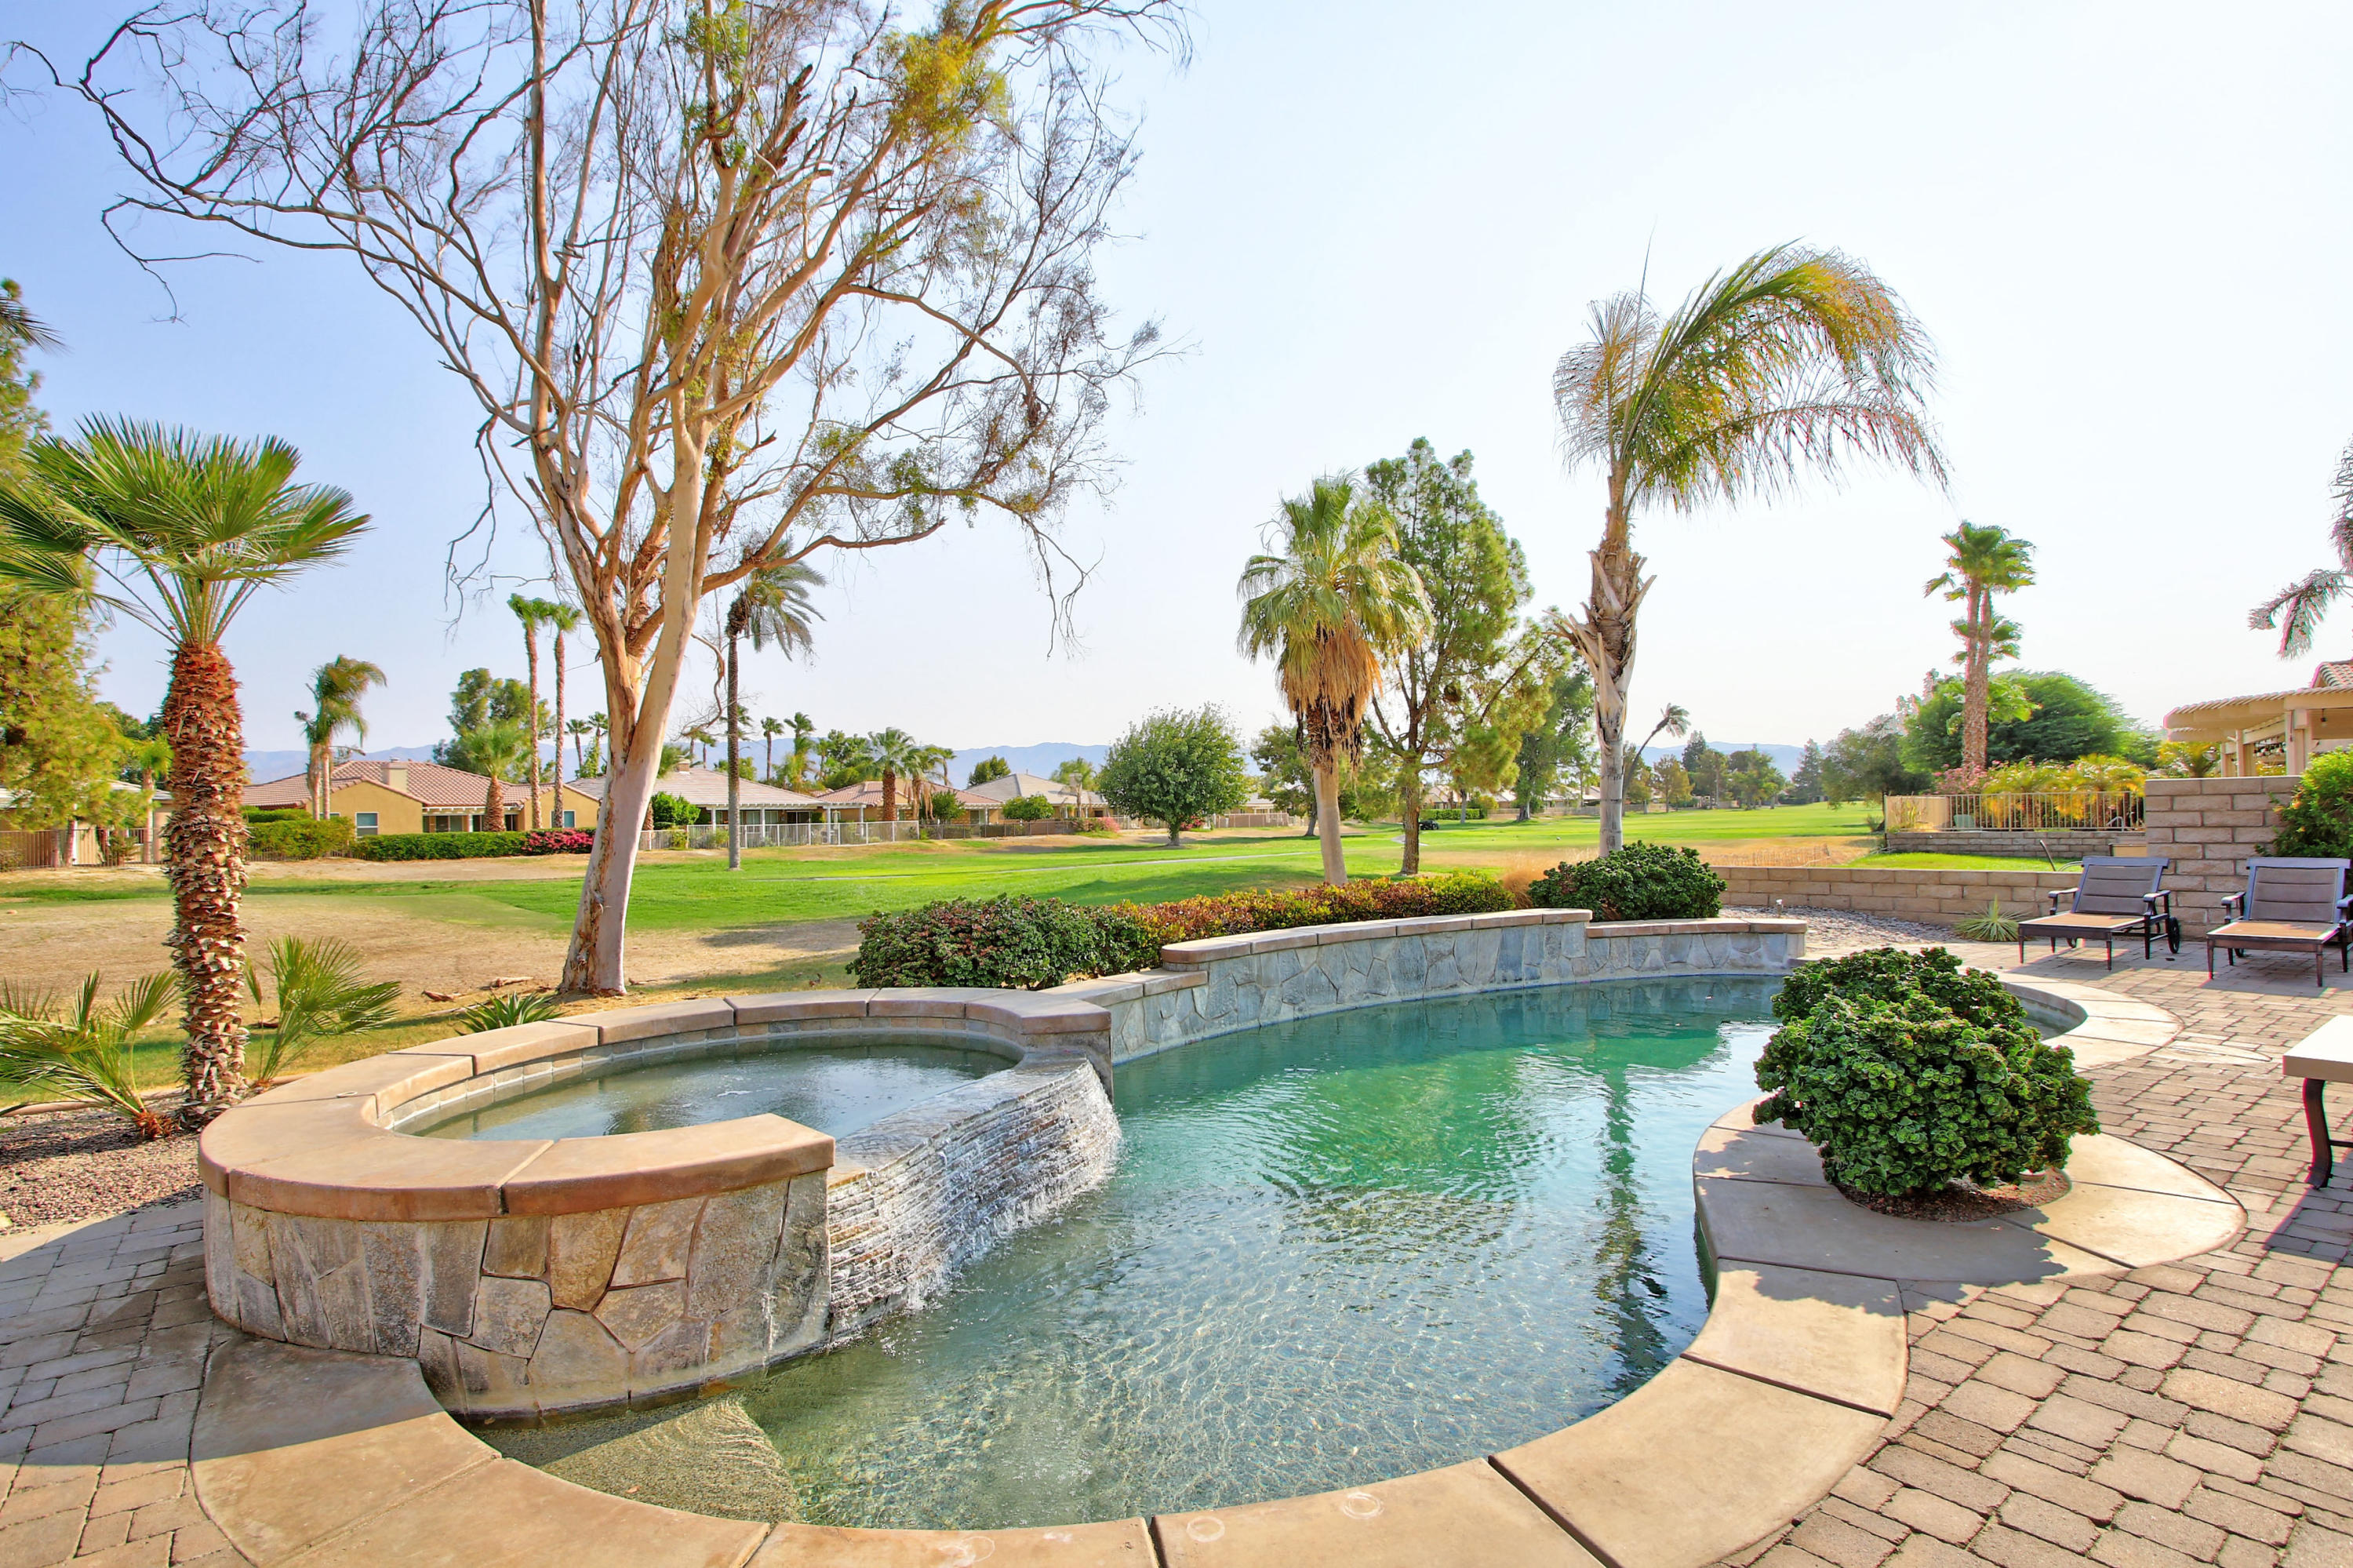 Photo of 82540 Delano Drive, Indio, CA 92201